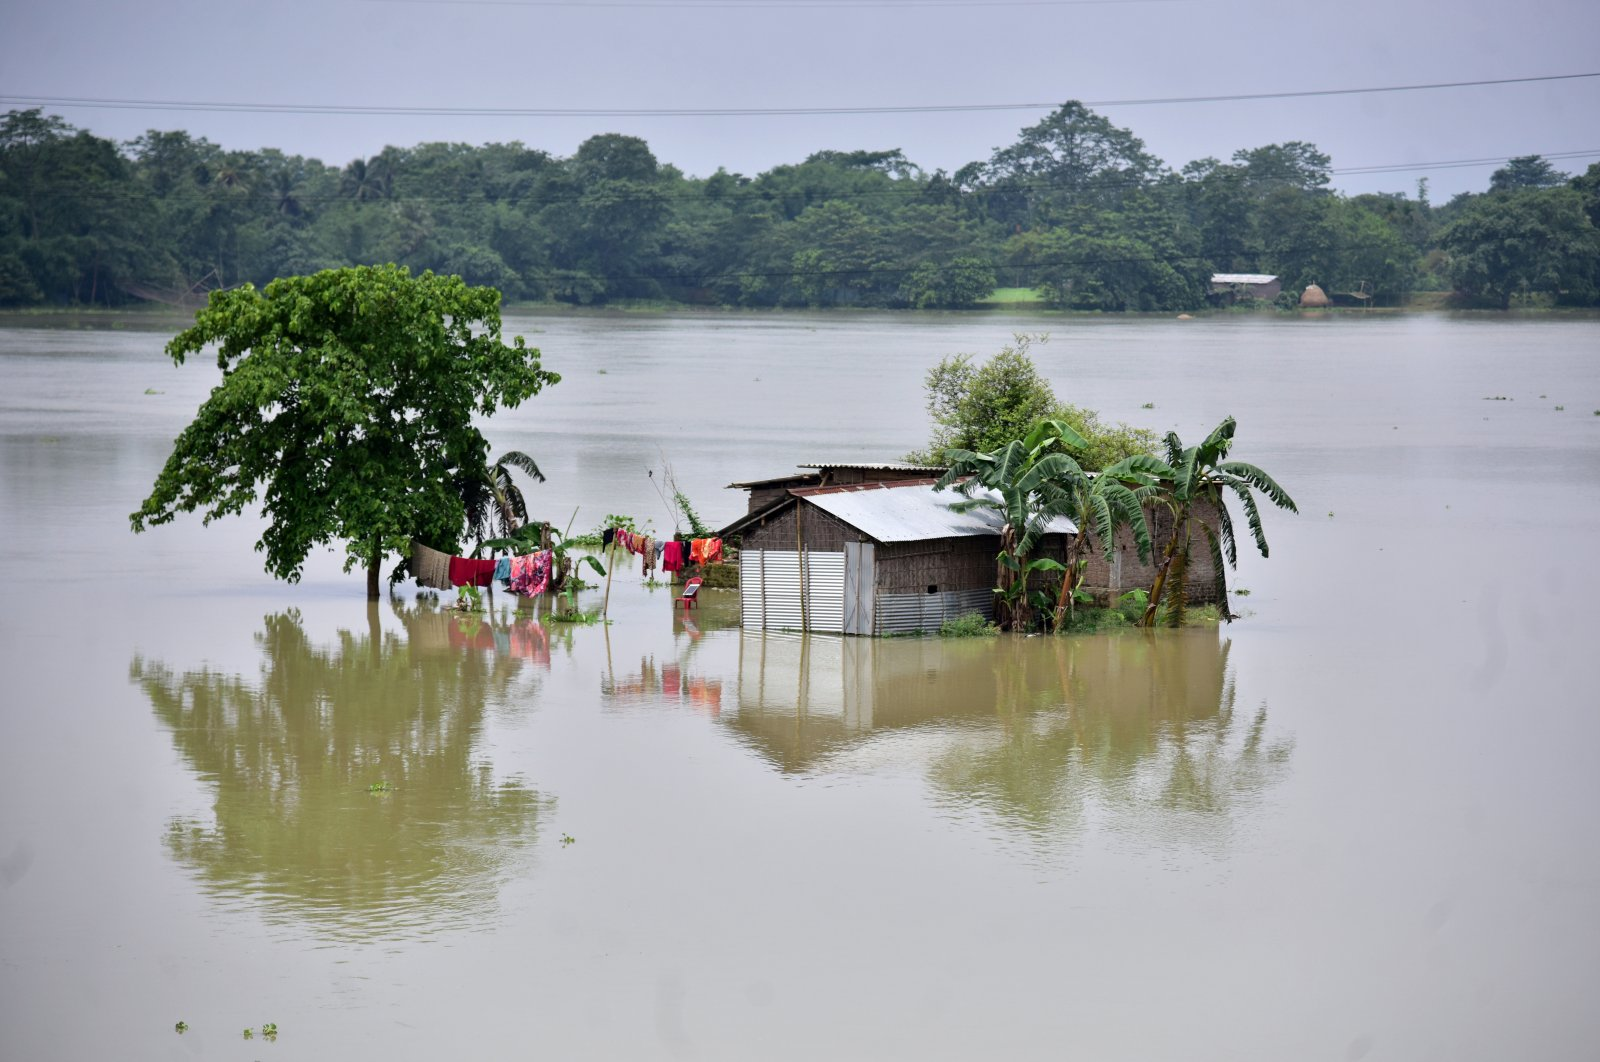 A partially submerged house is seen at the flood-affected Mayong village in Morigaon district, in the northeastern state of Assam, June 29, 2020. (REUTERS Photo)